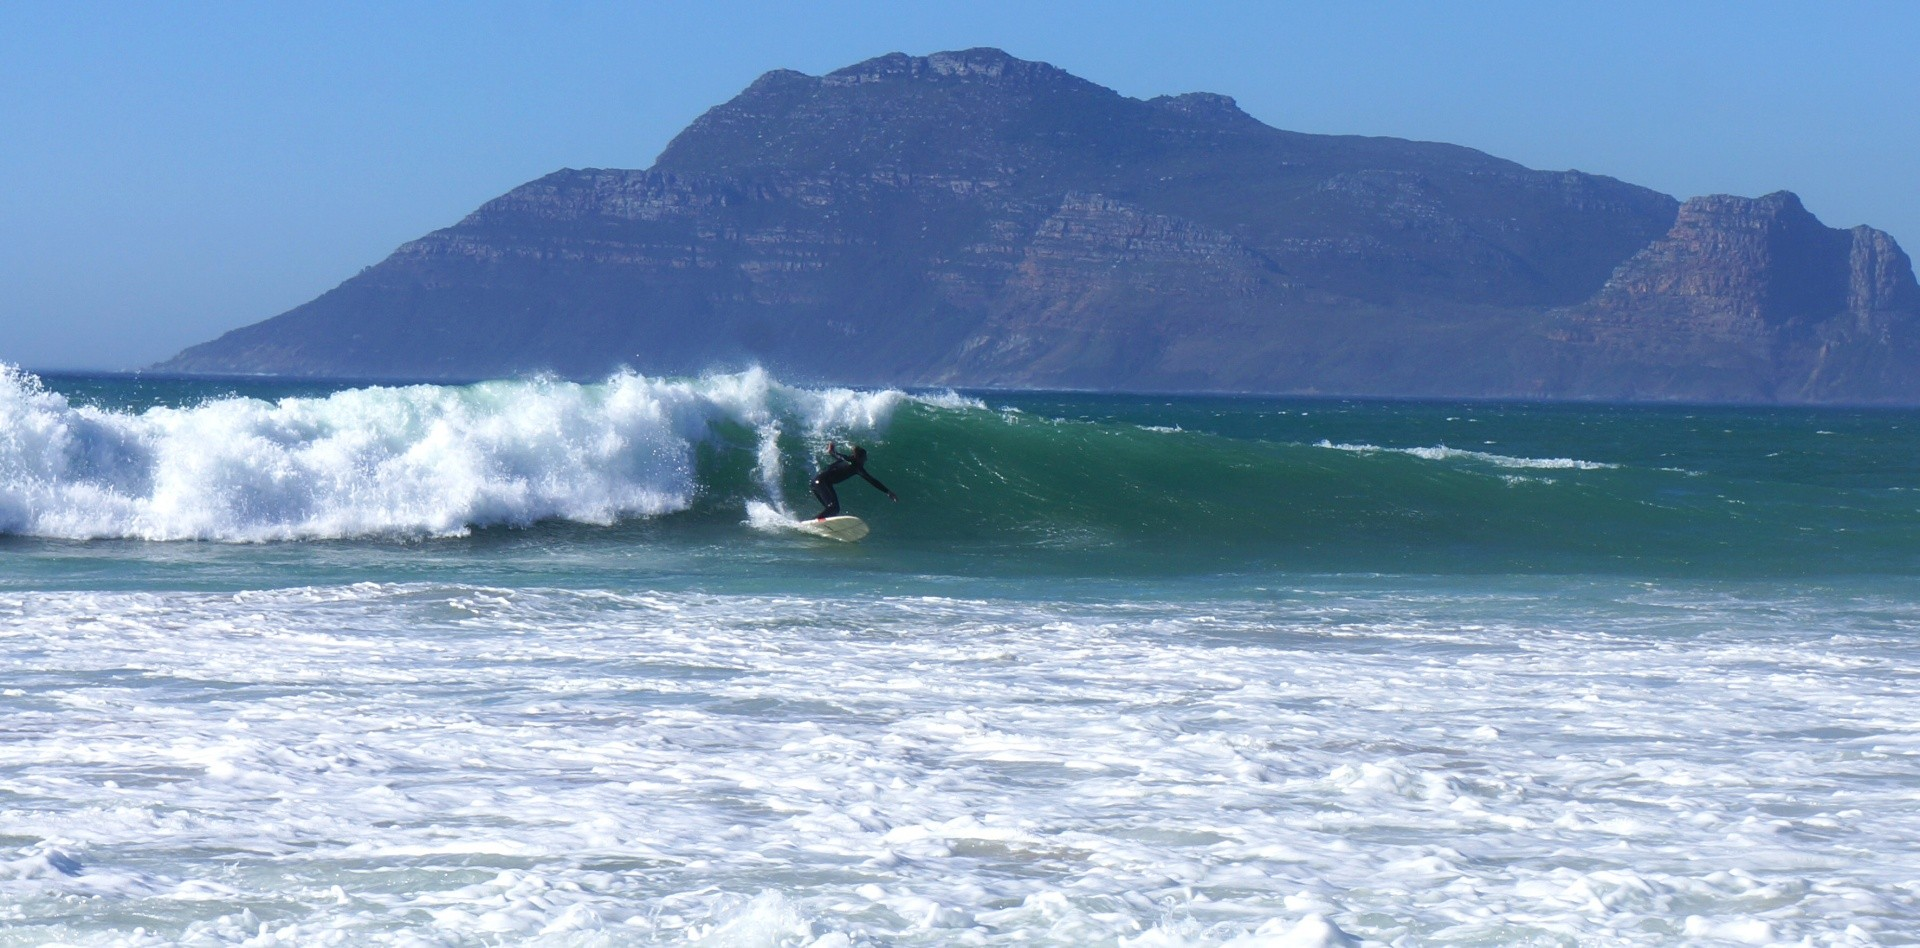 Daniel Satchell's photo of Kommetjie